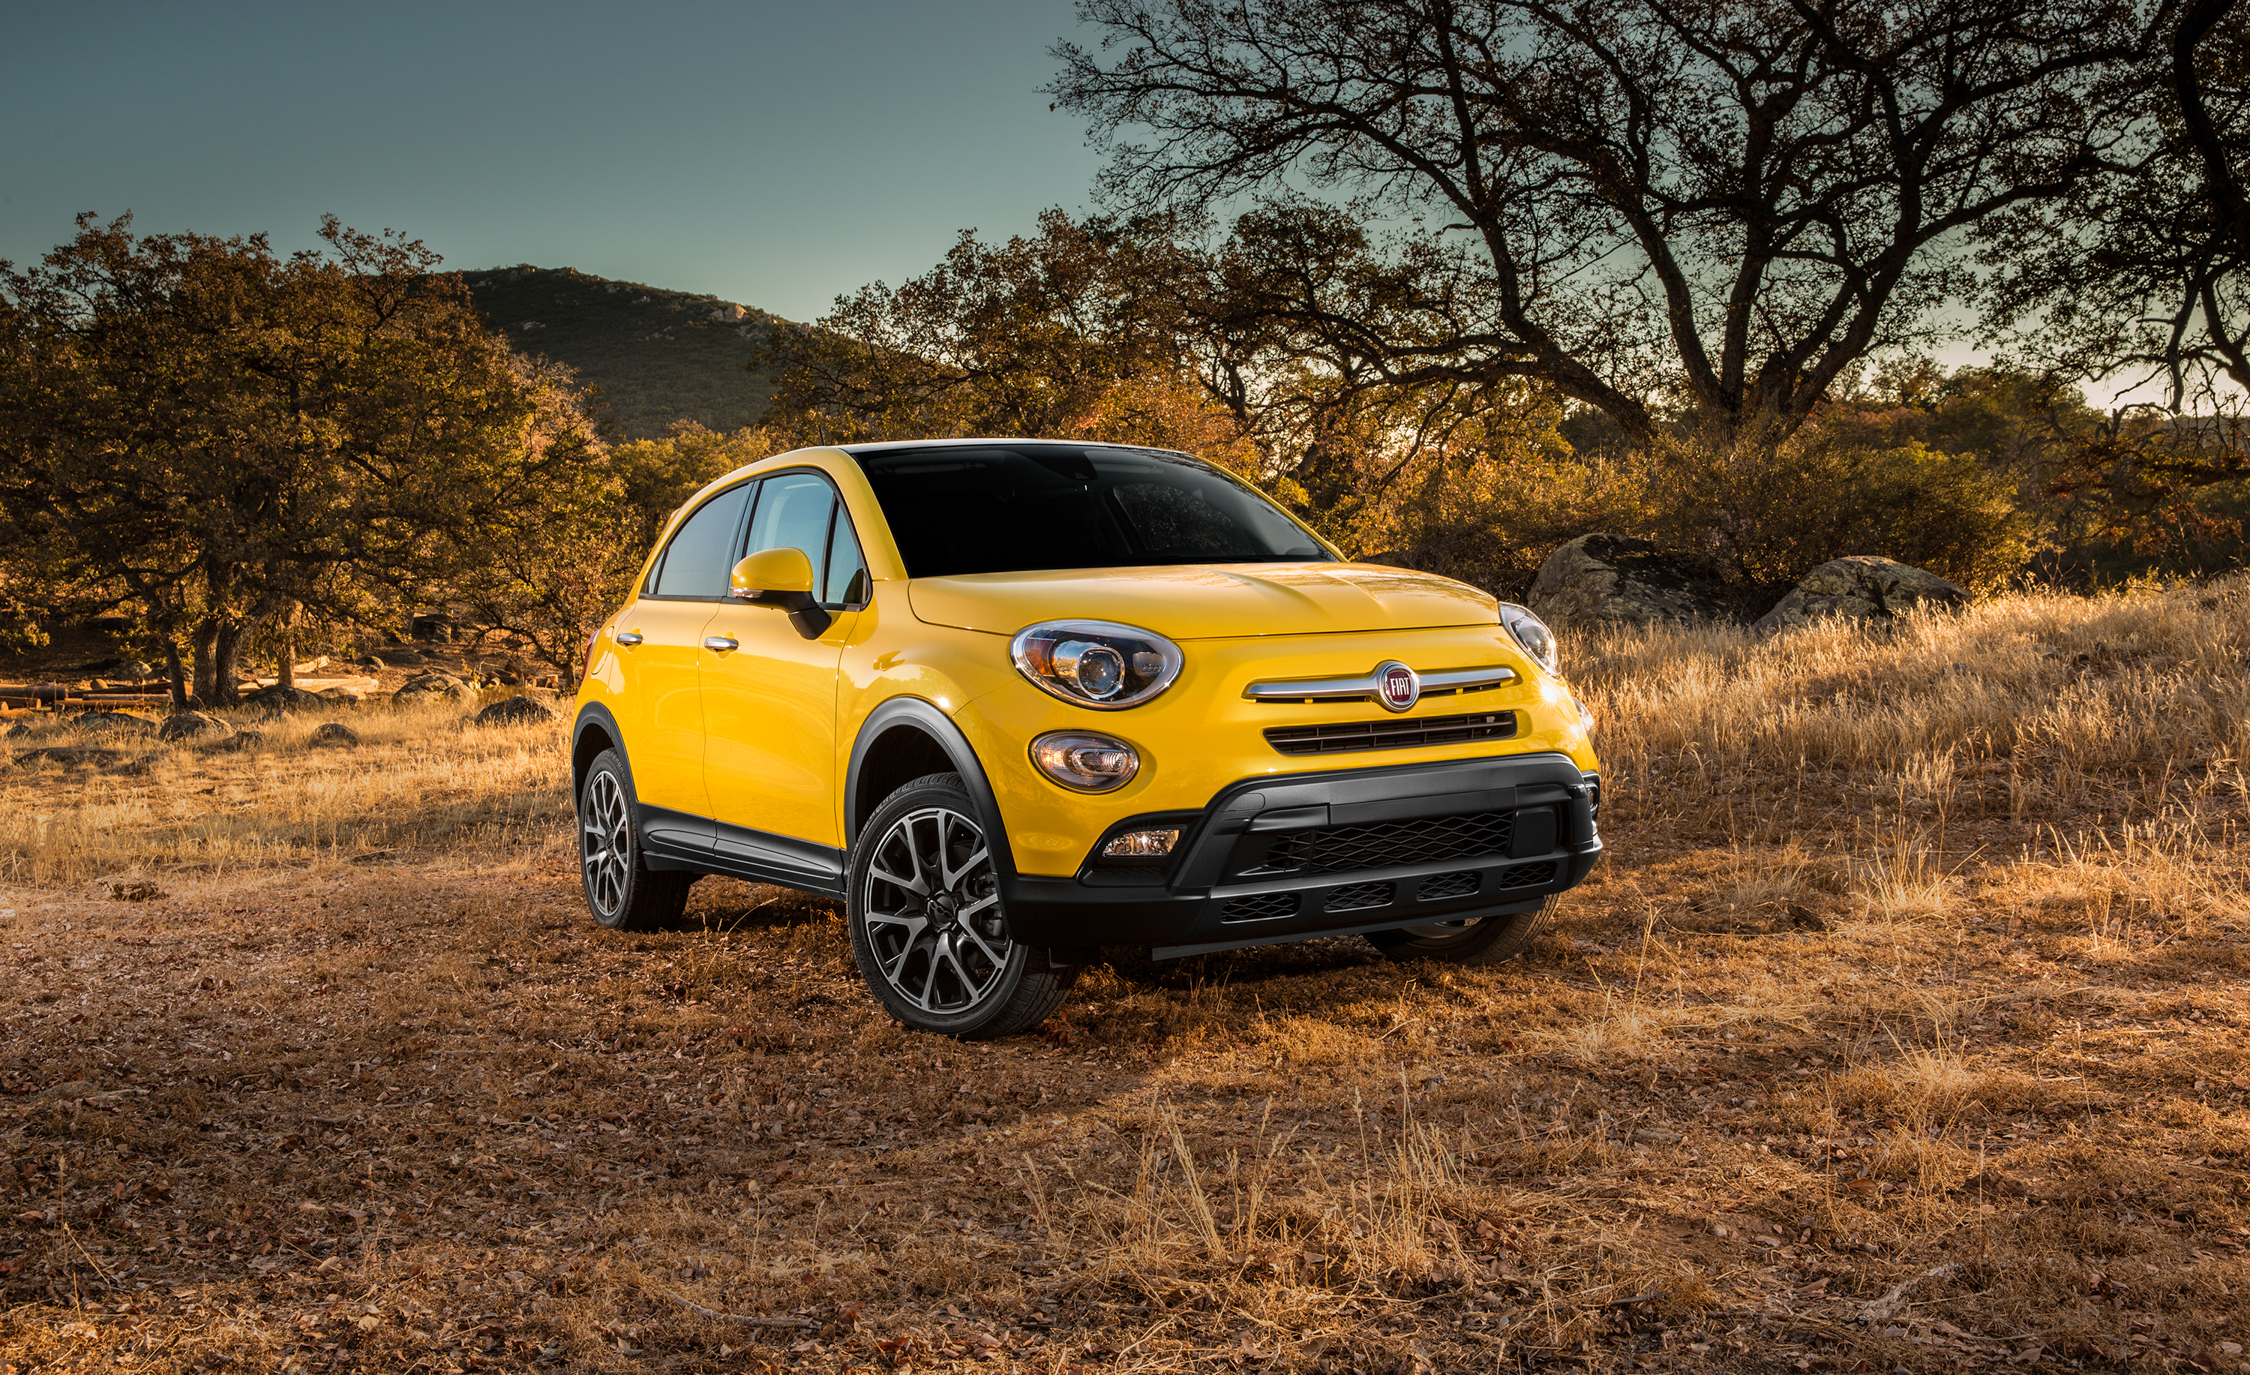 2016 Fiat 500X Trekking Plus Yellow Review